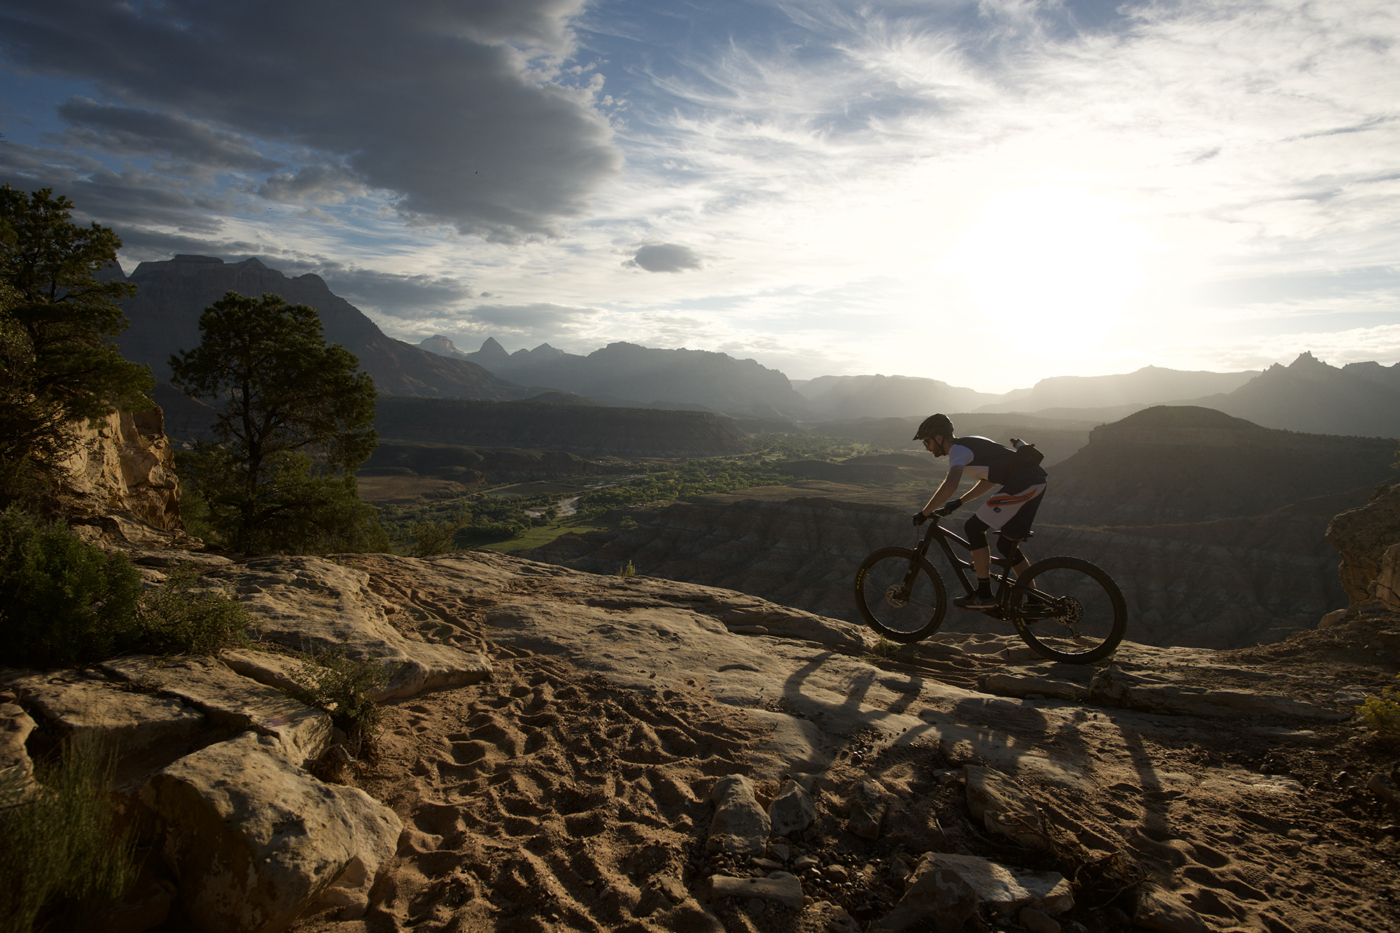 Mountain biker riding across rocky terrain in foreground, with sunsetting over tall rock formations and desert in the background